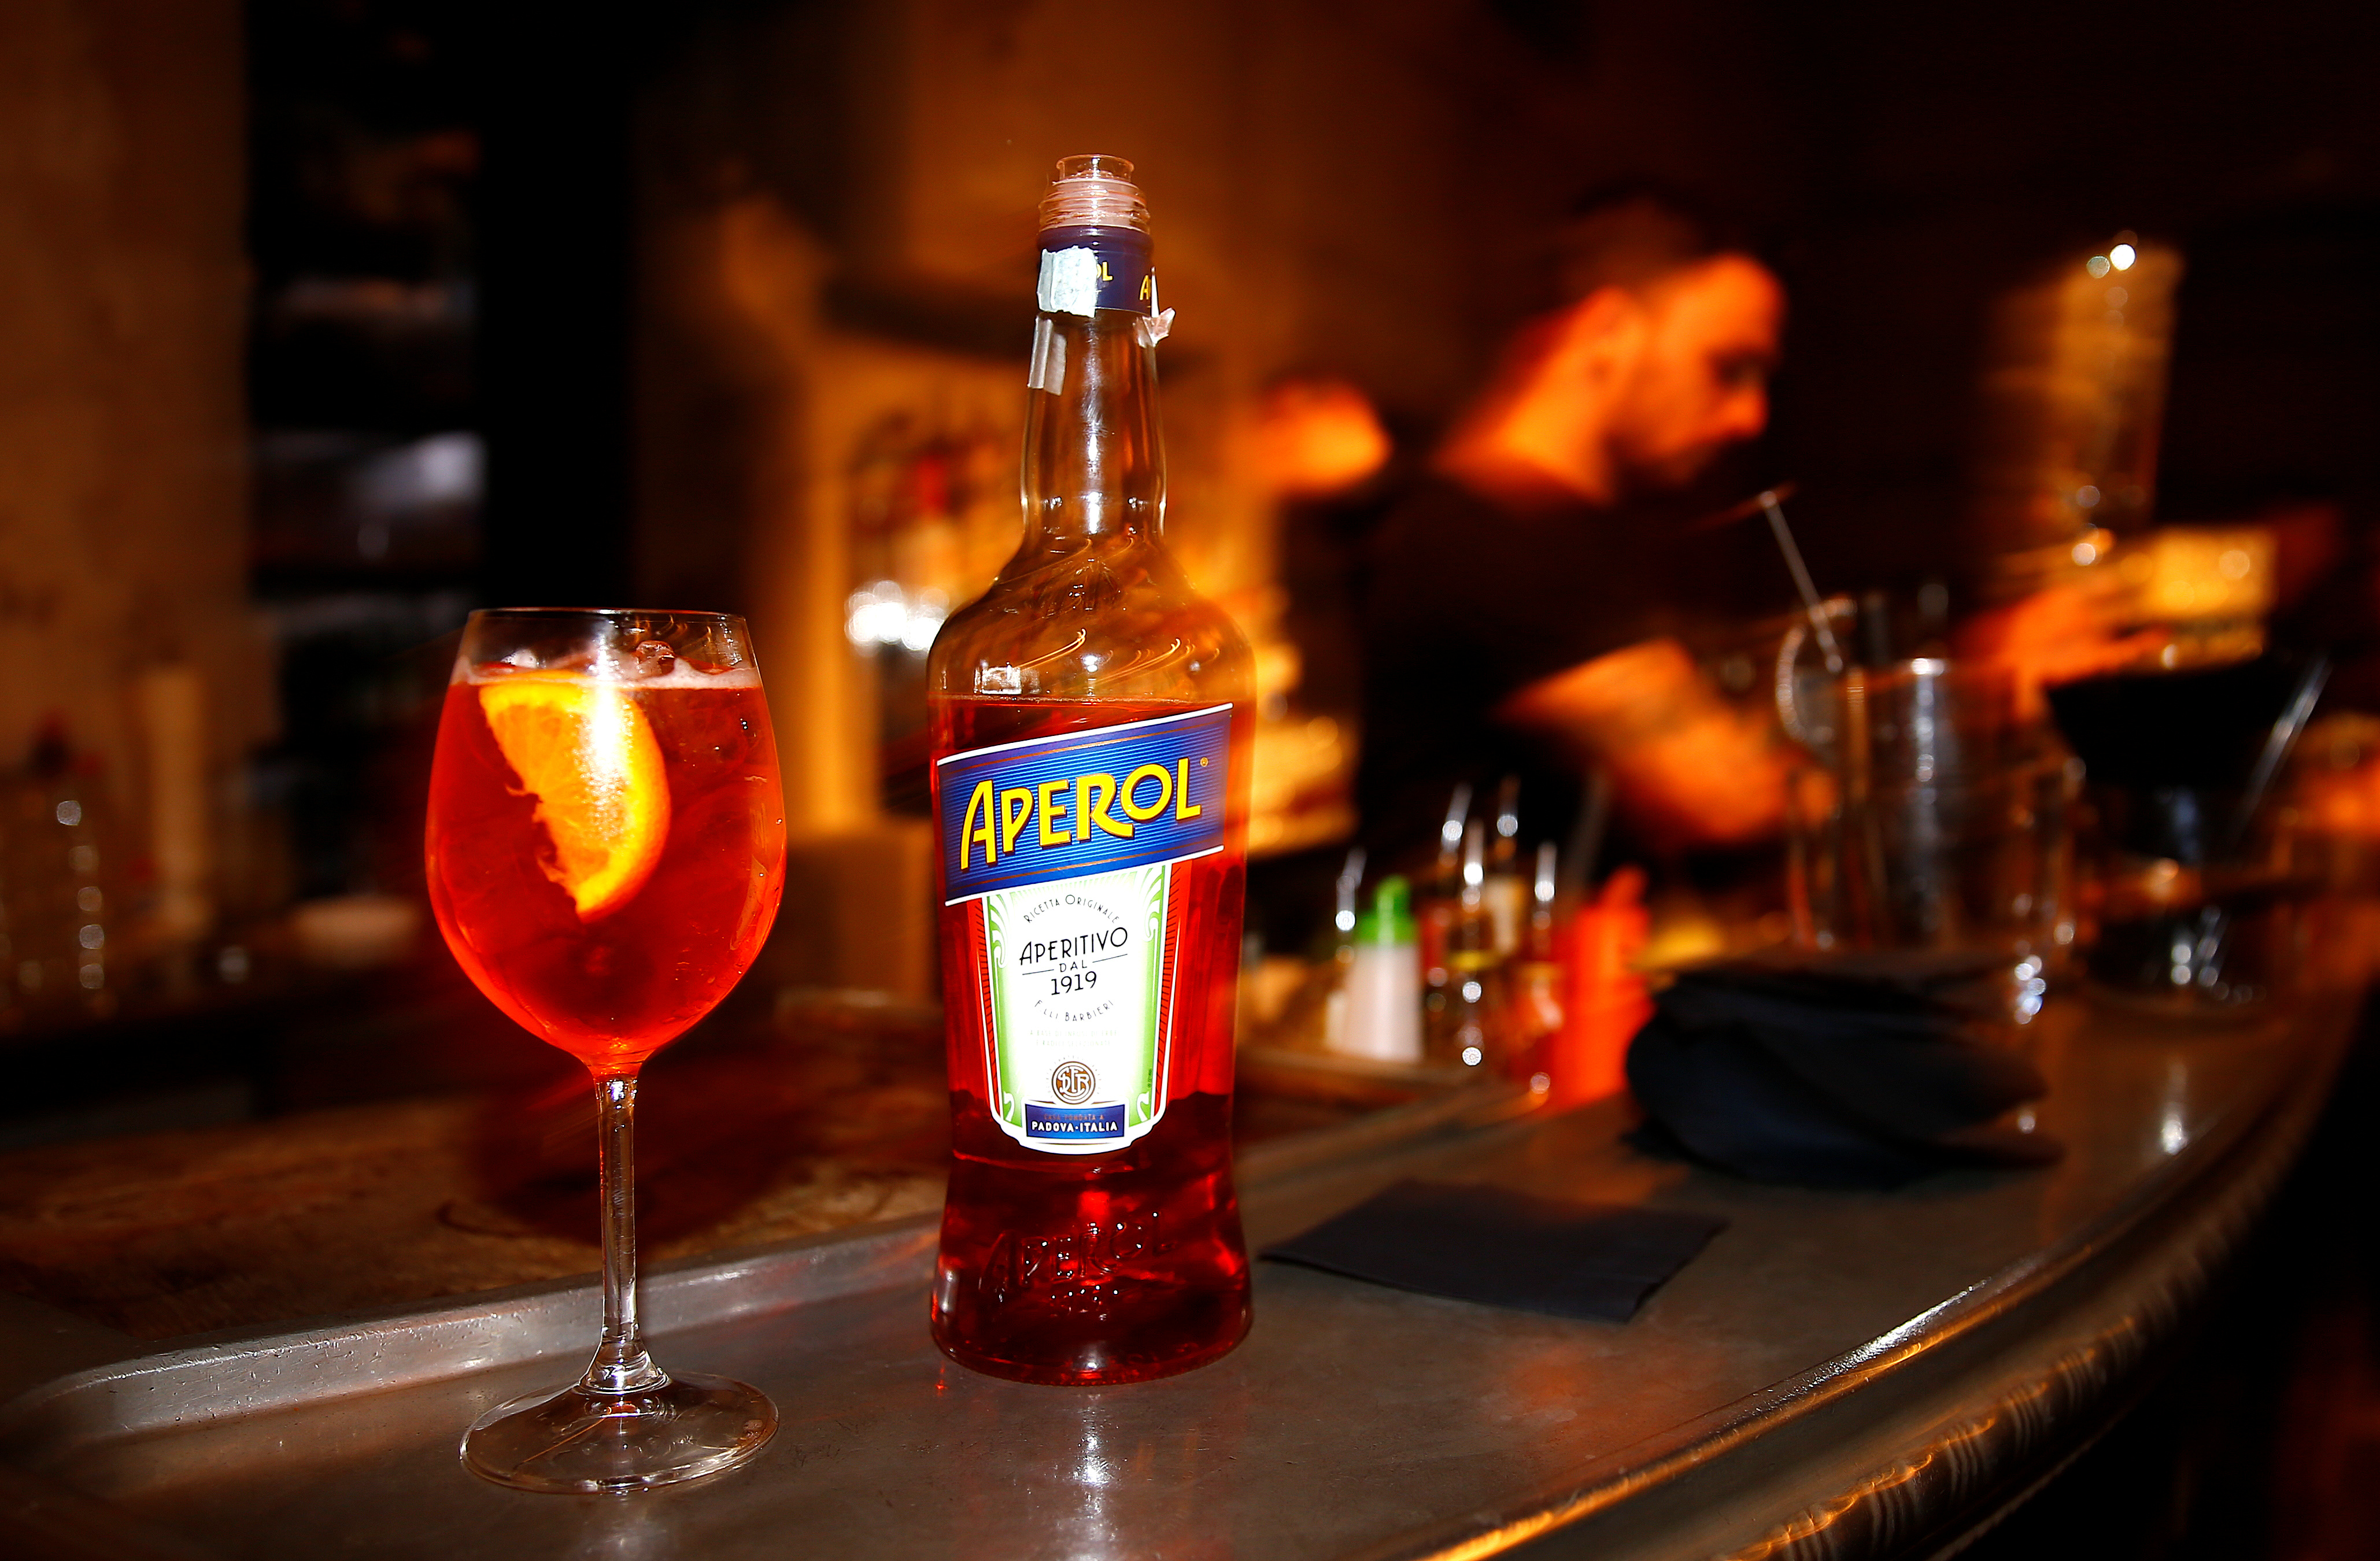 As Aperol spritz fatigue sets in, the fight to sell the next big drink is already underway